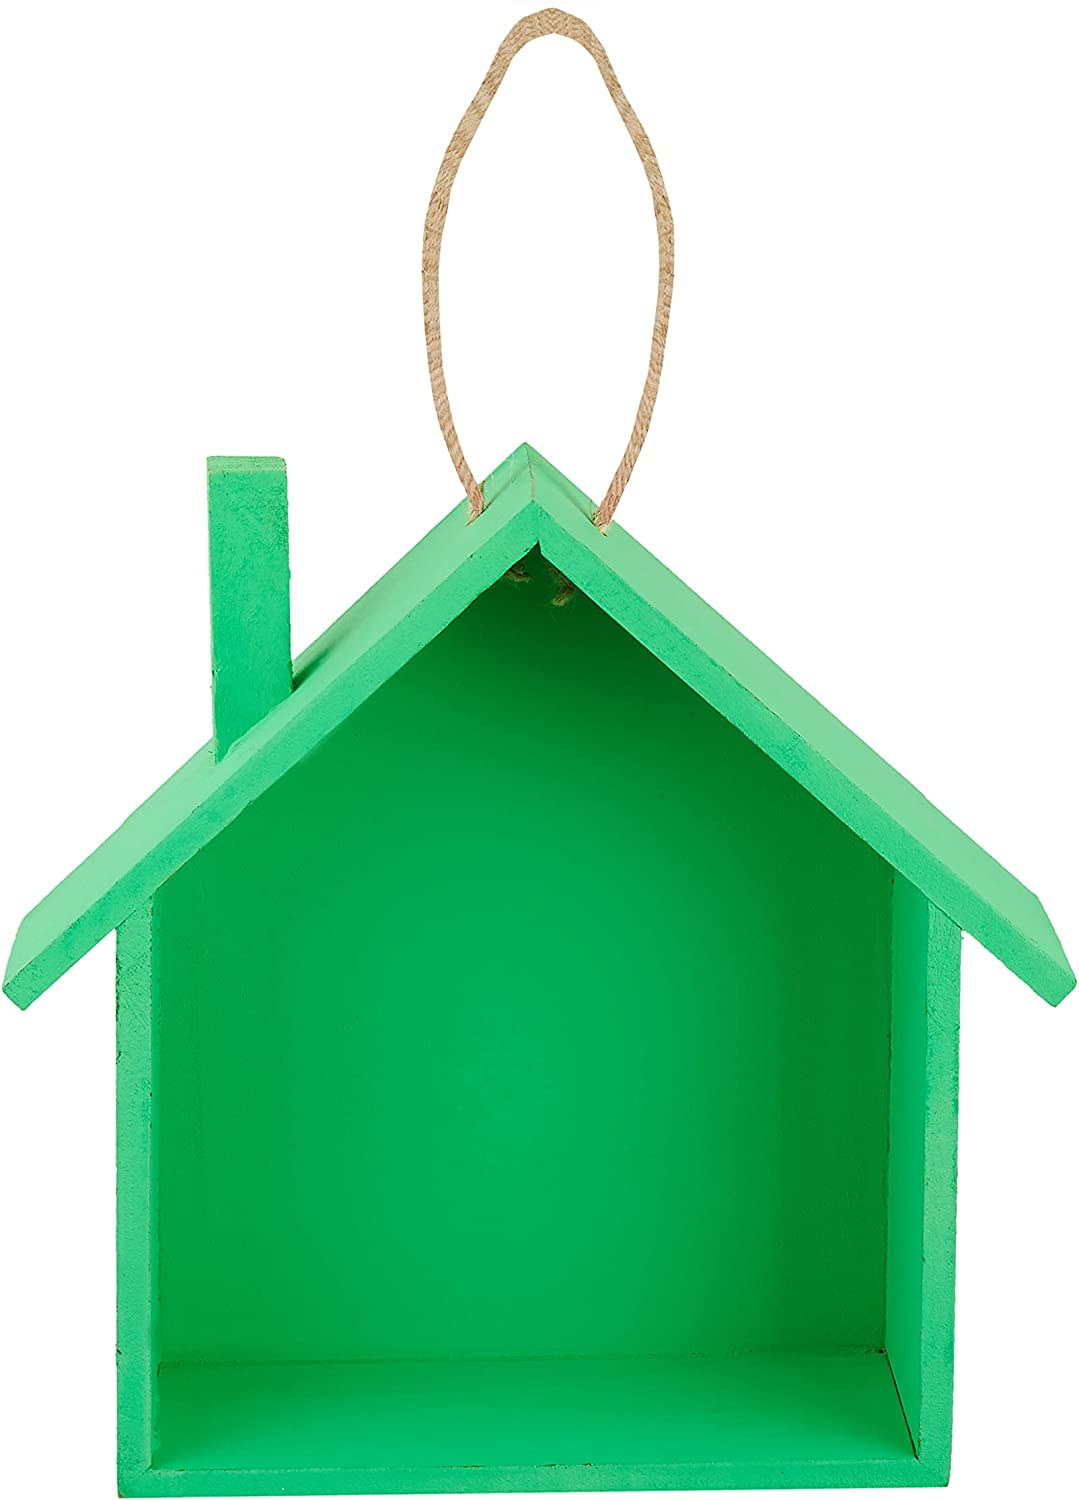 Green Hanging 67% OFF of Quality inspection fixed price Bird House for Birdhouses residen Outside Garden -